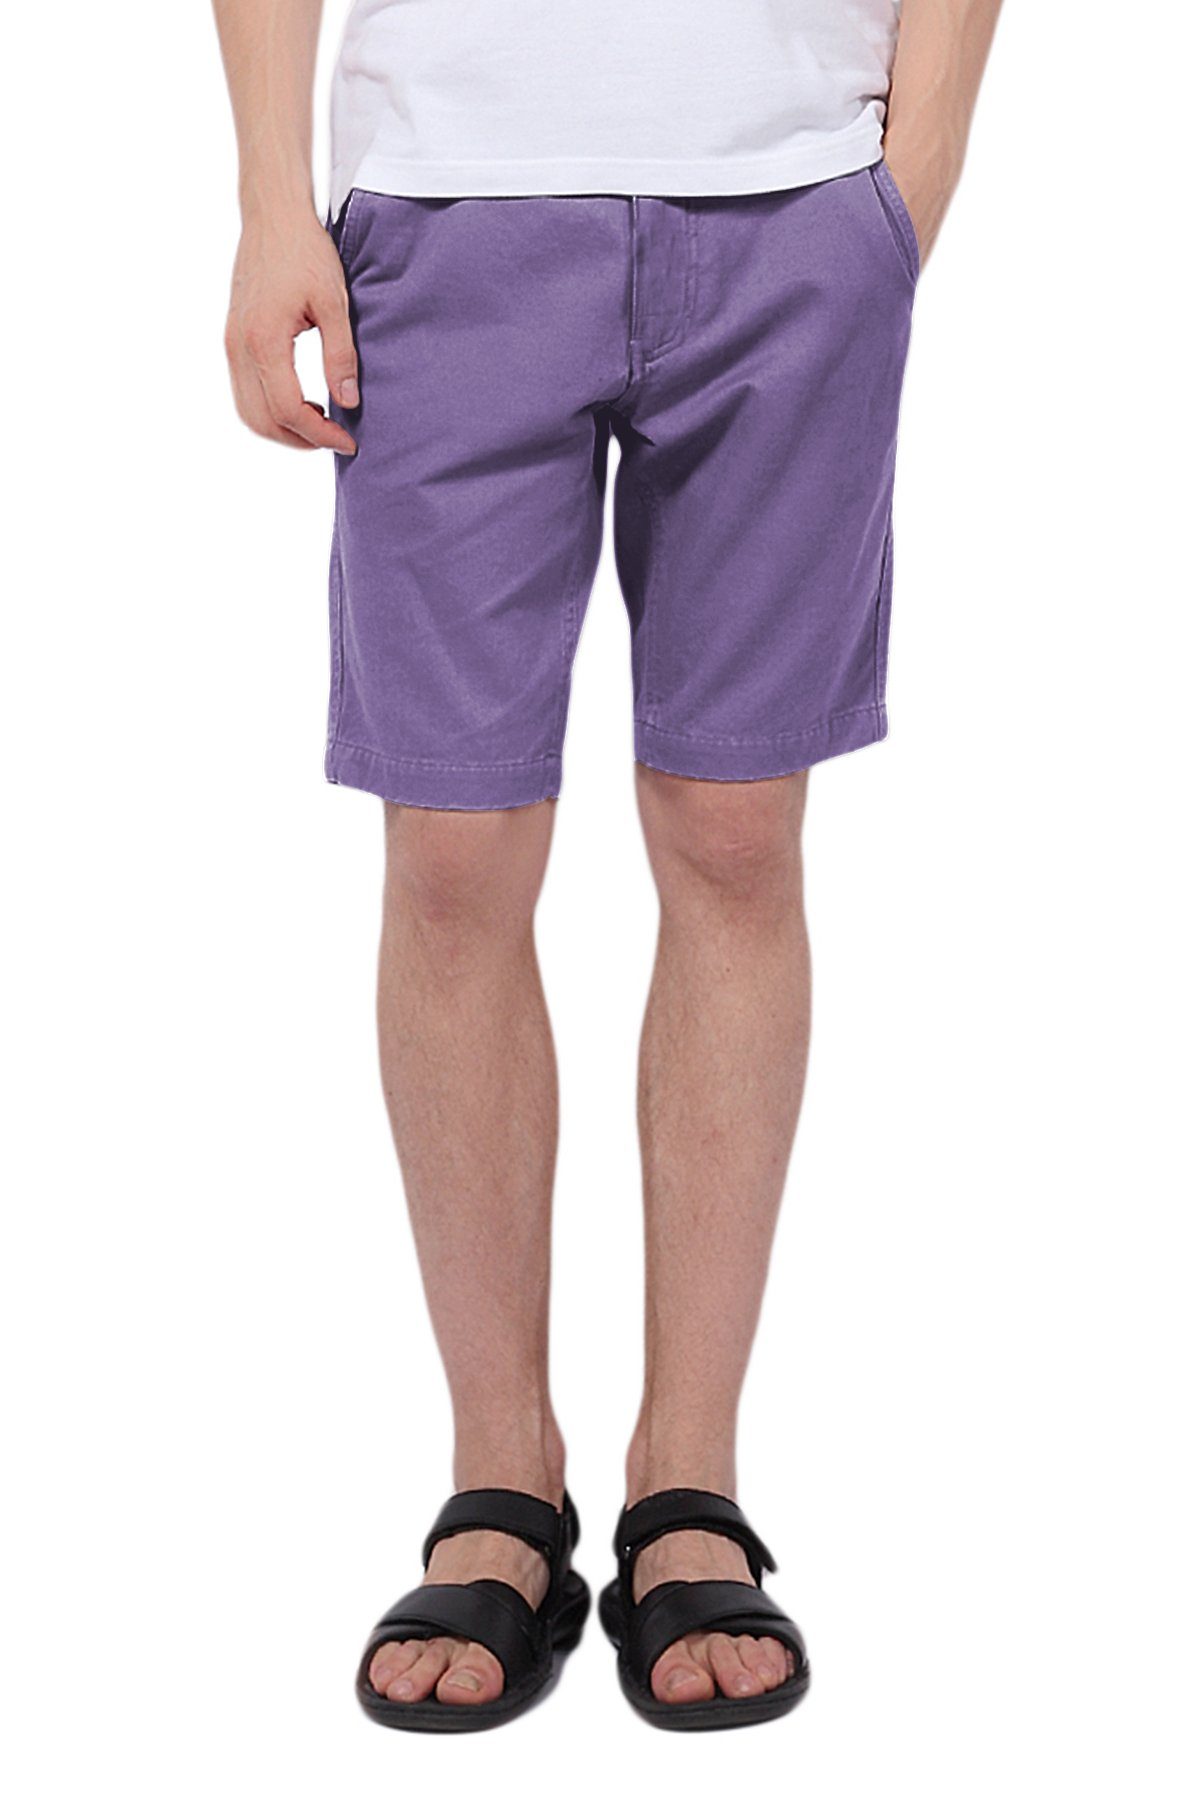 Pau1Hami1ton PH-01 Men's 10'' Inseam Chino Shorts Slim Fit Flat Front Peached Twill Casual Pants(36 Purple)